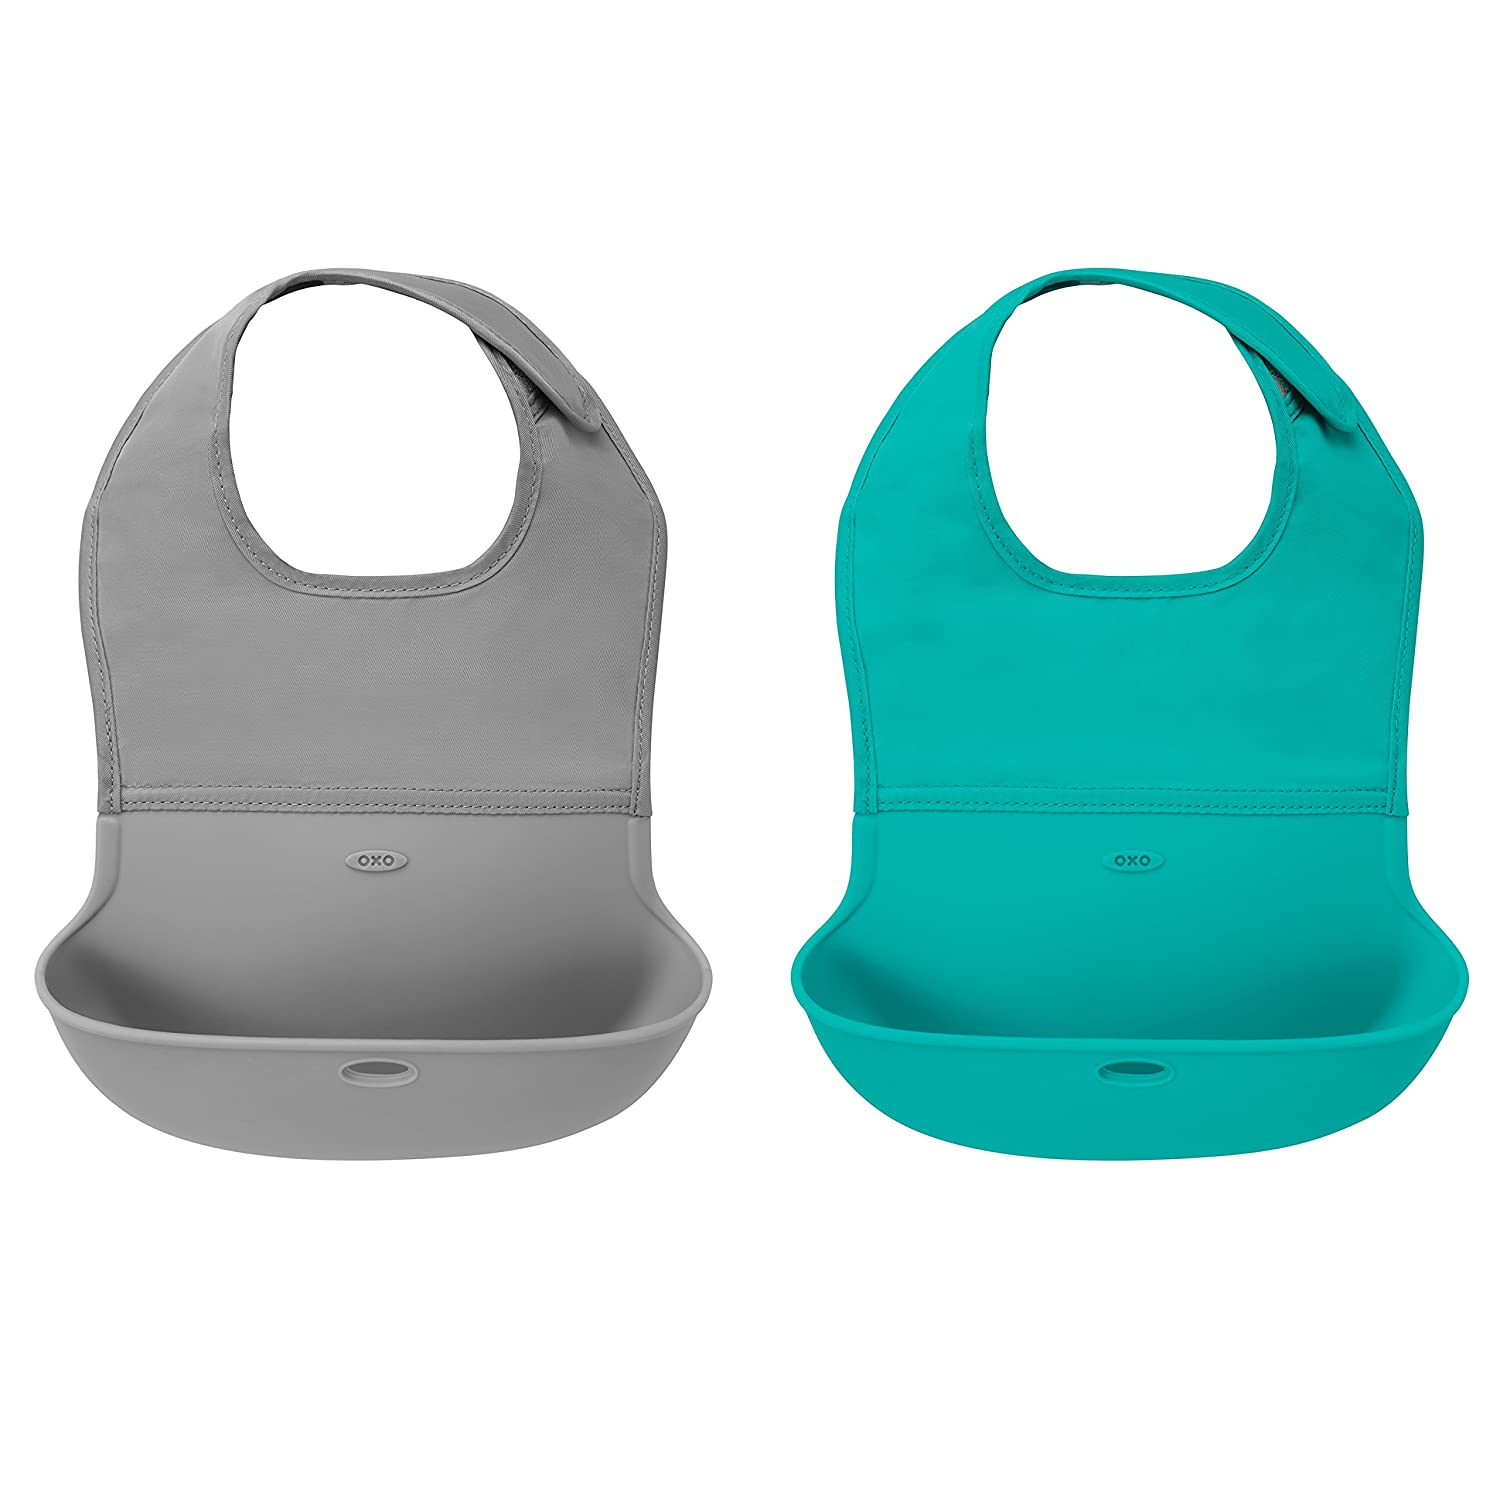 OXO Tot Waterproof Silicone Roll Up Bib with Comfort-Fit Fabric Neck, 2 Pack, Gray/Aqua 61118800